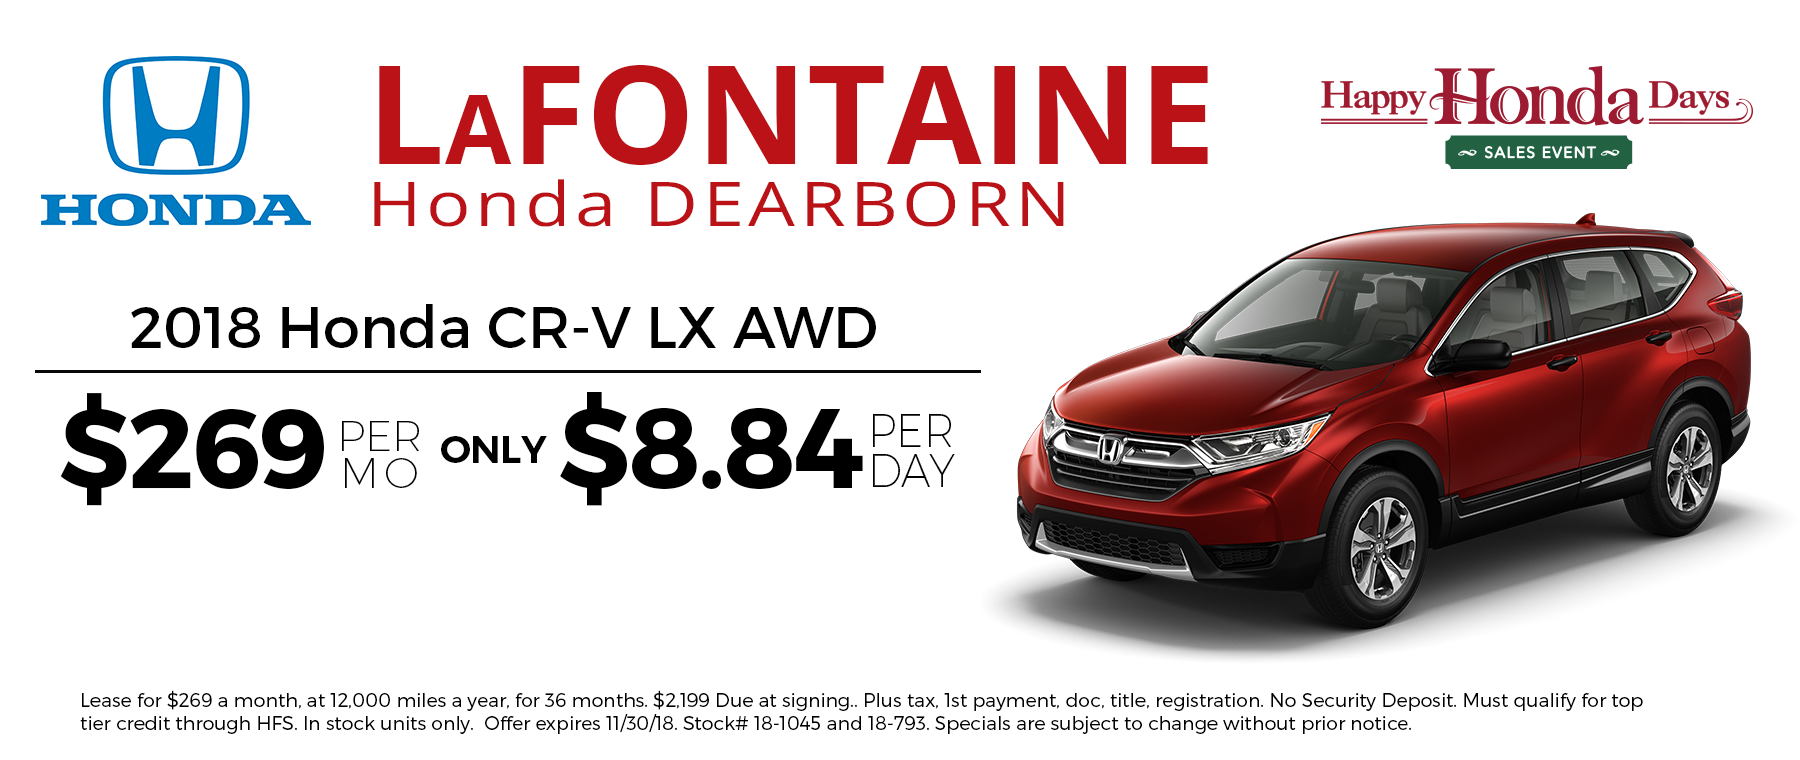 Lafontaine Used Cars >> LaFontaine Honda | Honda Dealer in Dearborn, MI